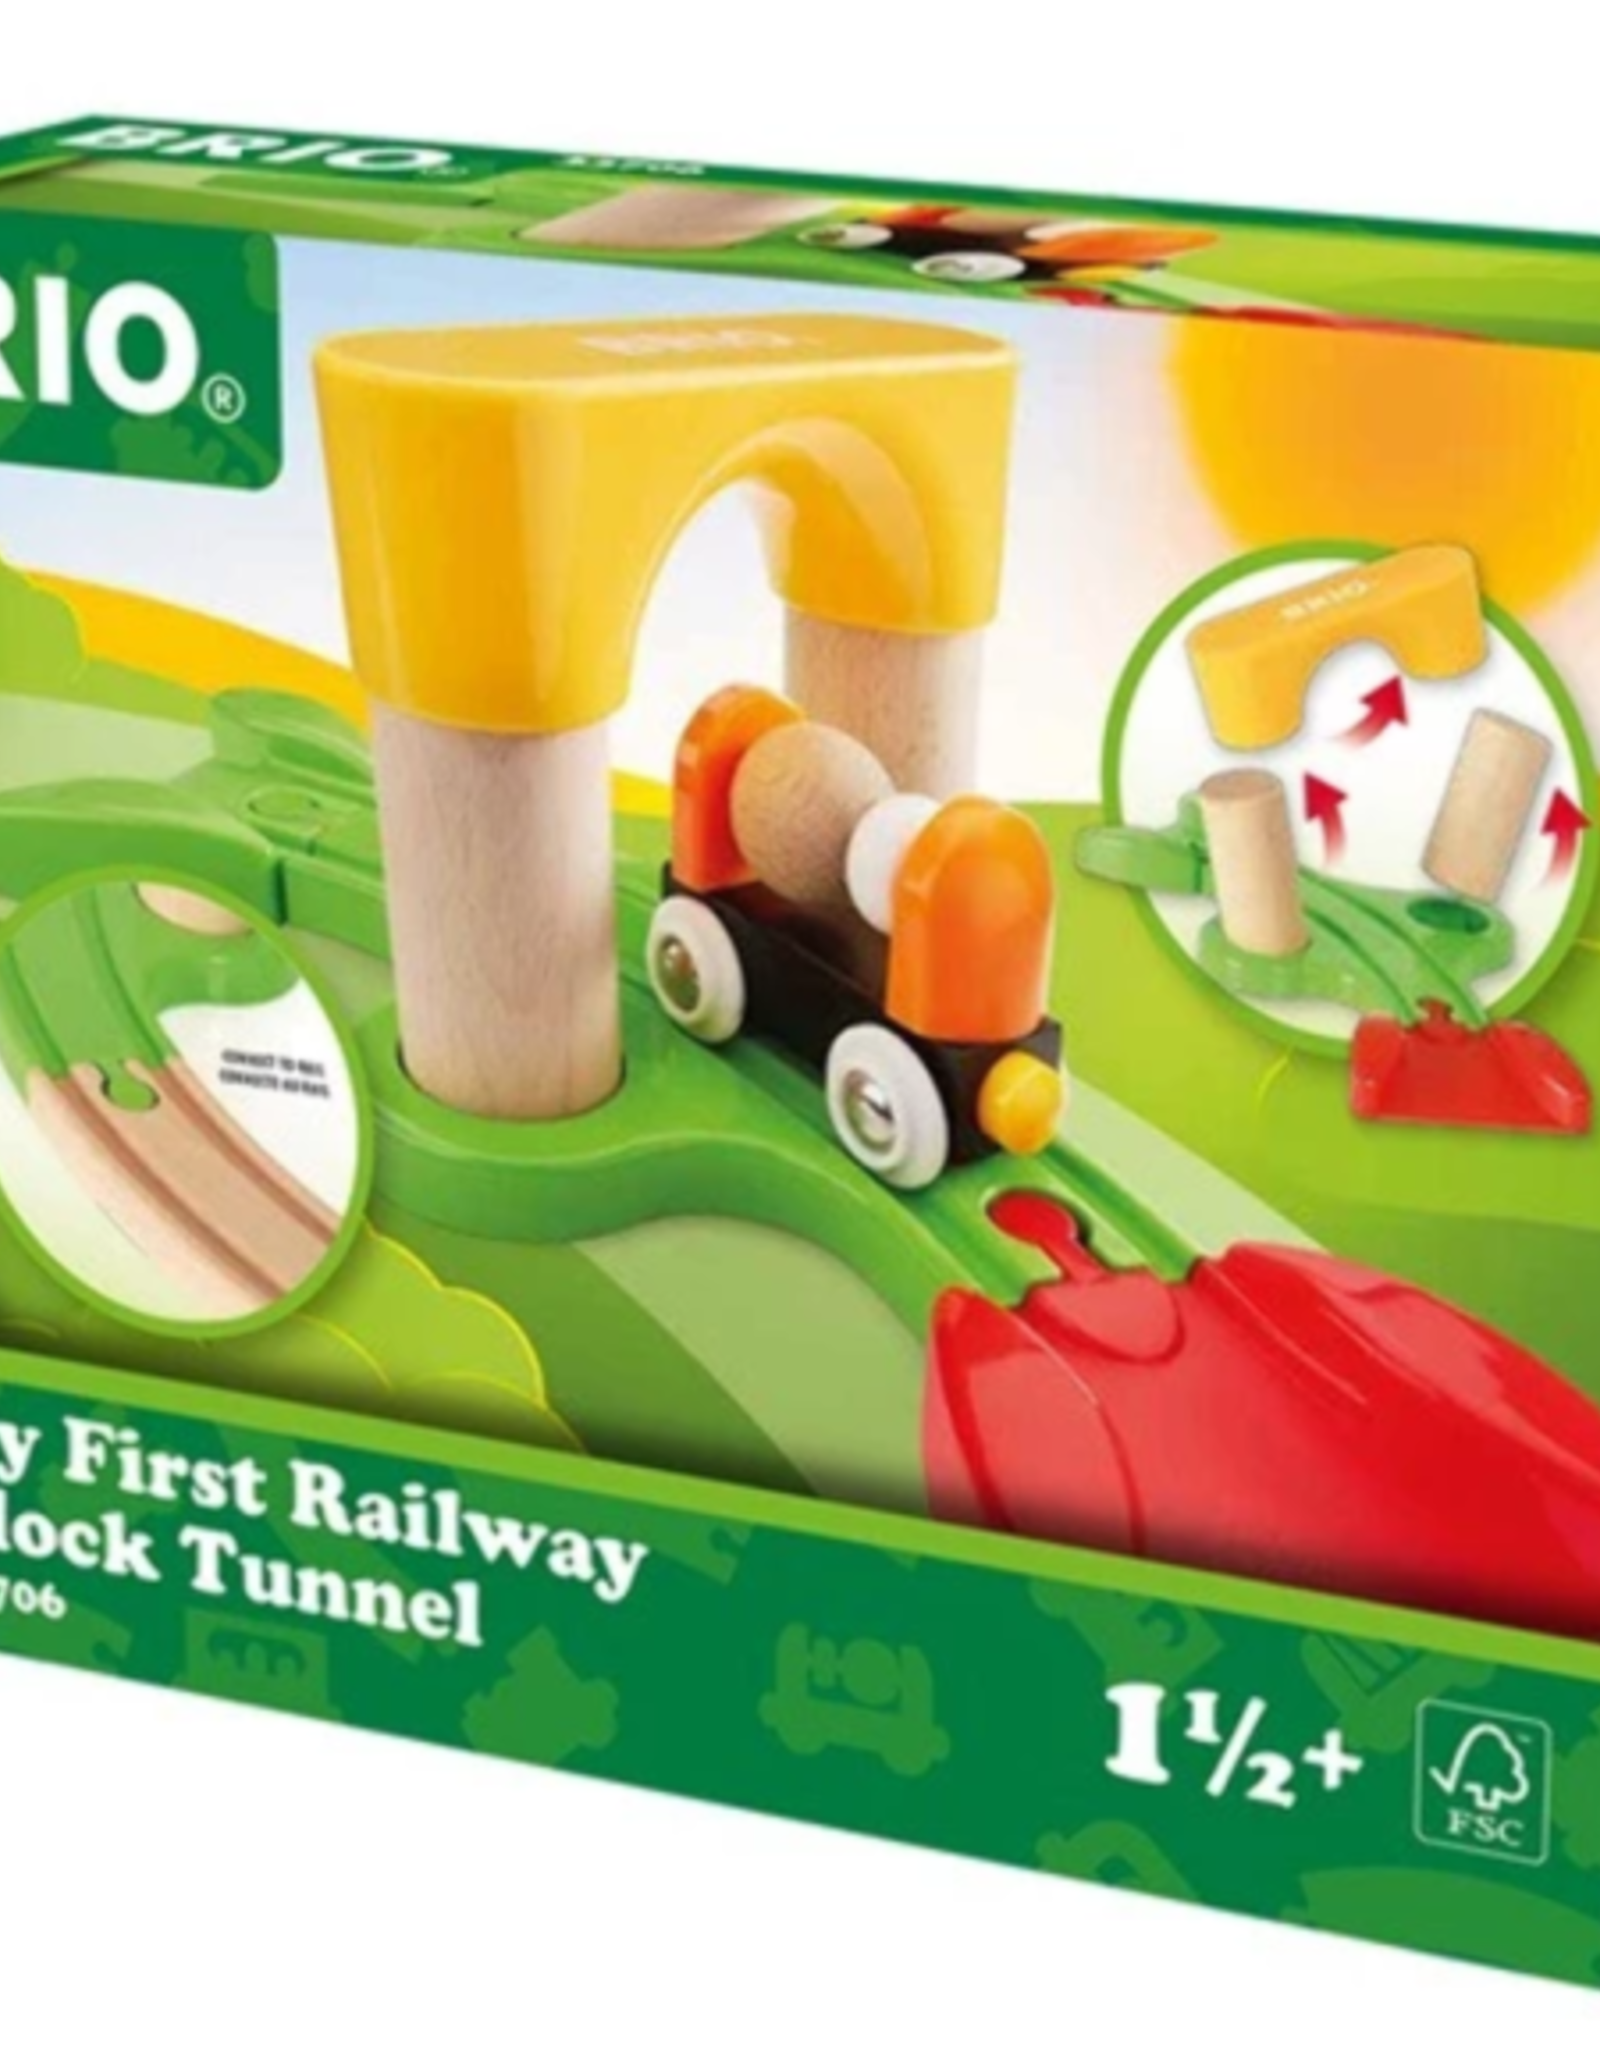 Brio BRIO - My First Railway Block Tunnel